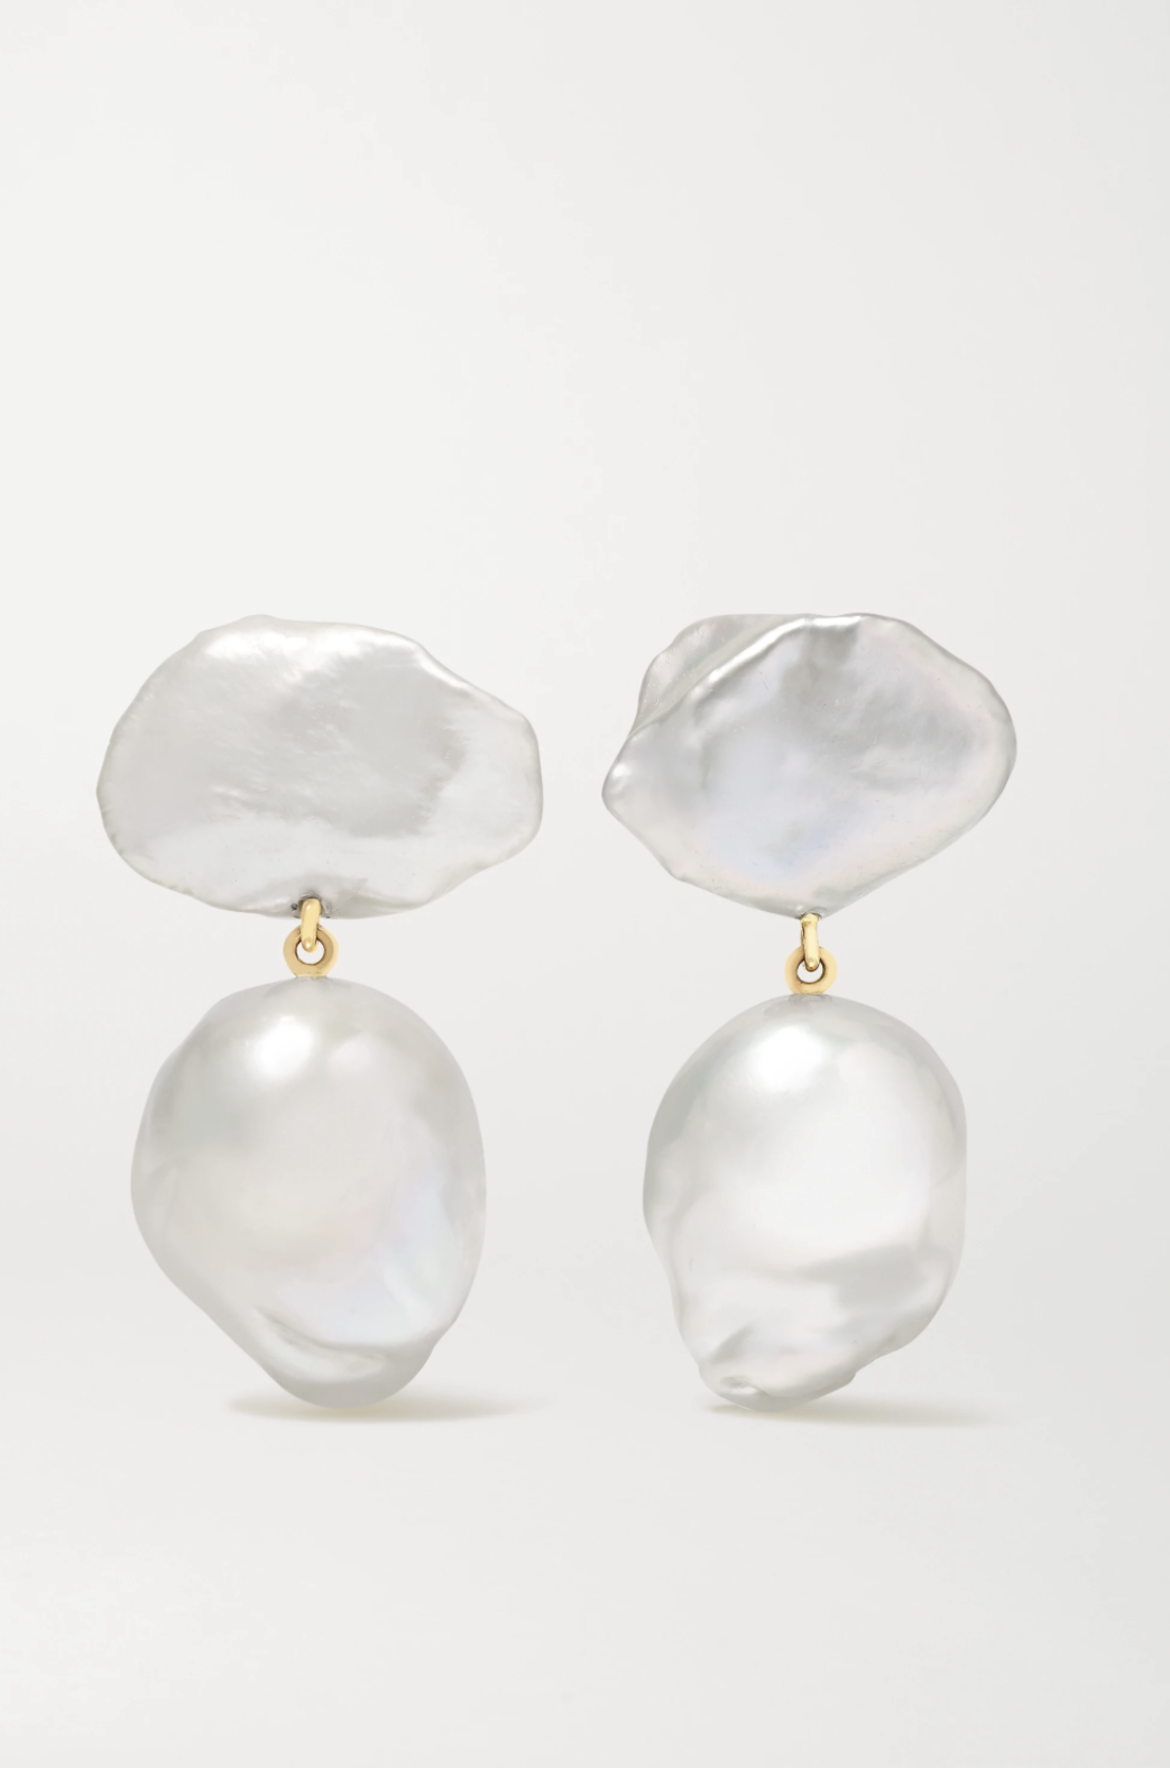 SOPHIE BILLE BRAHE Sirene Venus 14-karat gold pearl earrings  HK$7,060 from net-a-porter